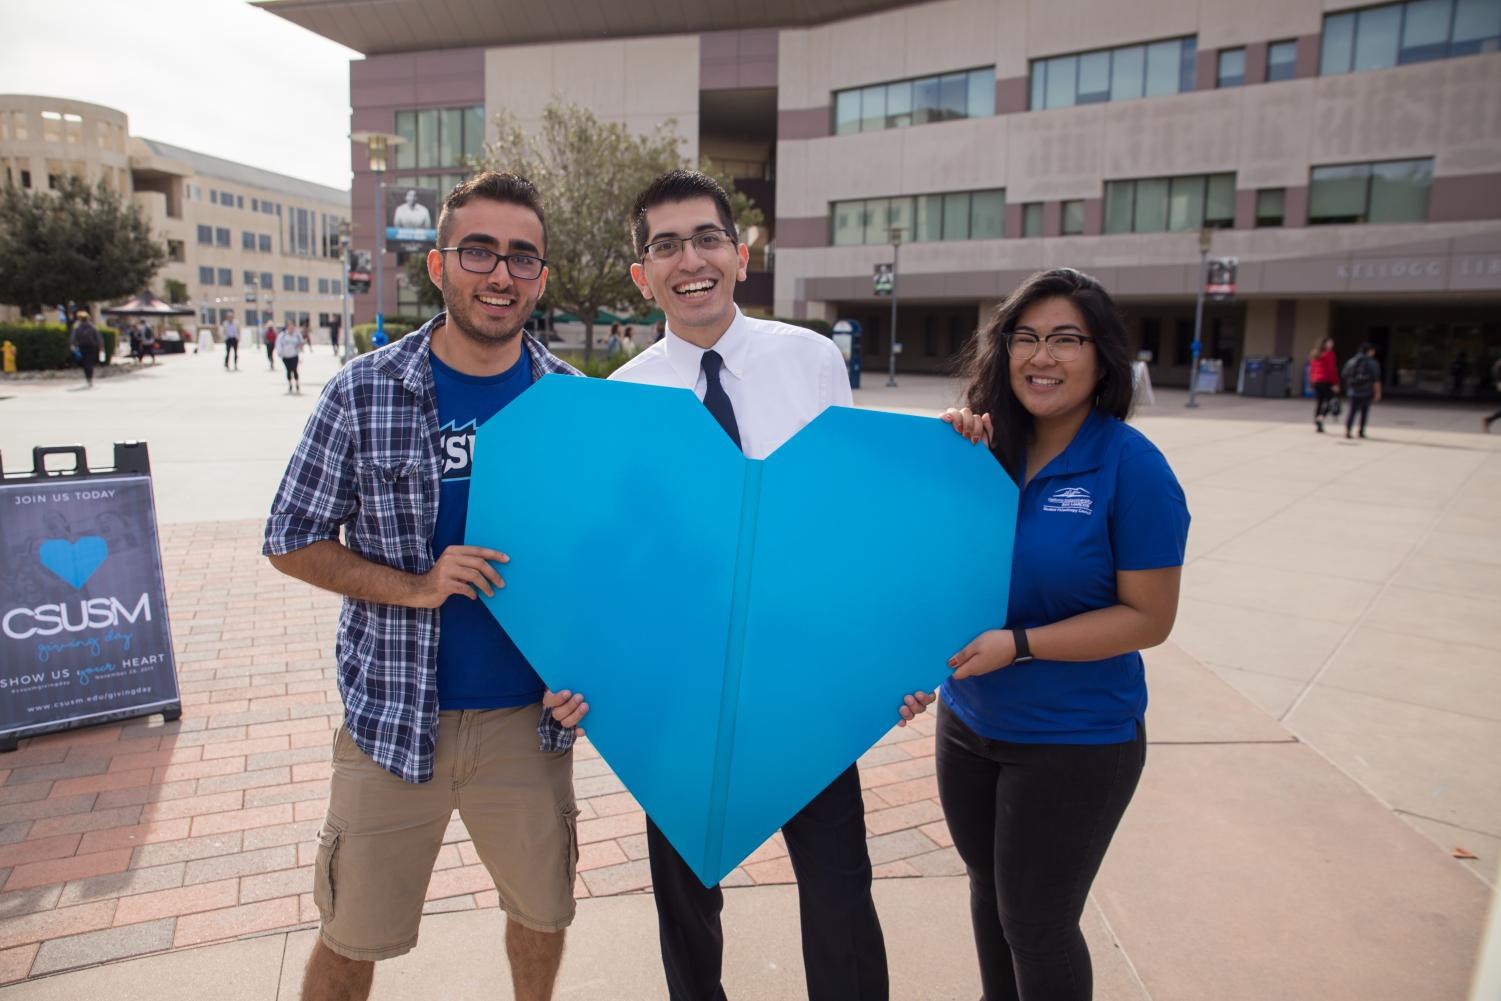 Students from the CSUSM Student Philanthropy Council, from left to right (I need to ask someone), then Chris Morales, and Anna Rapada.